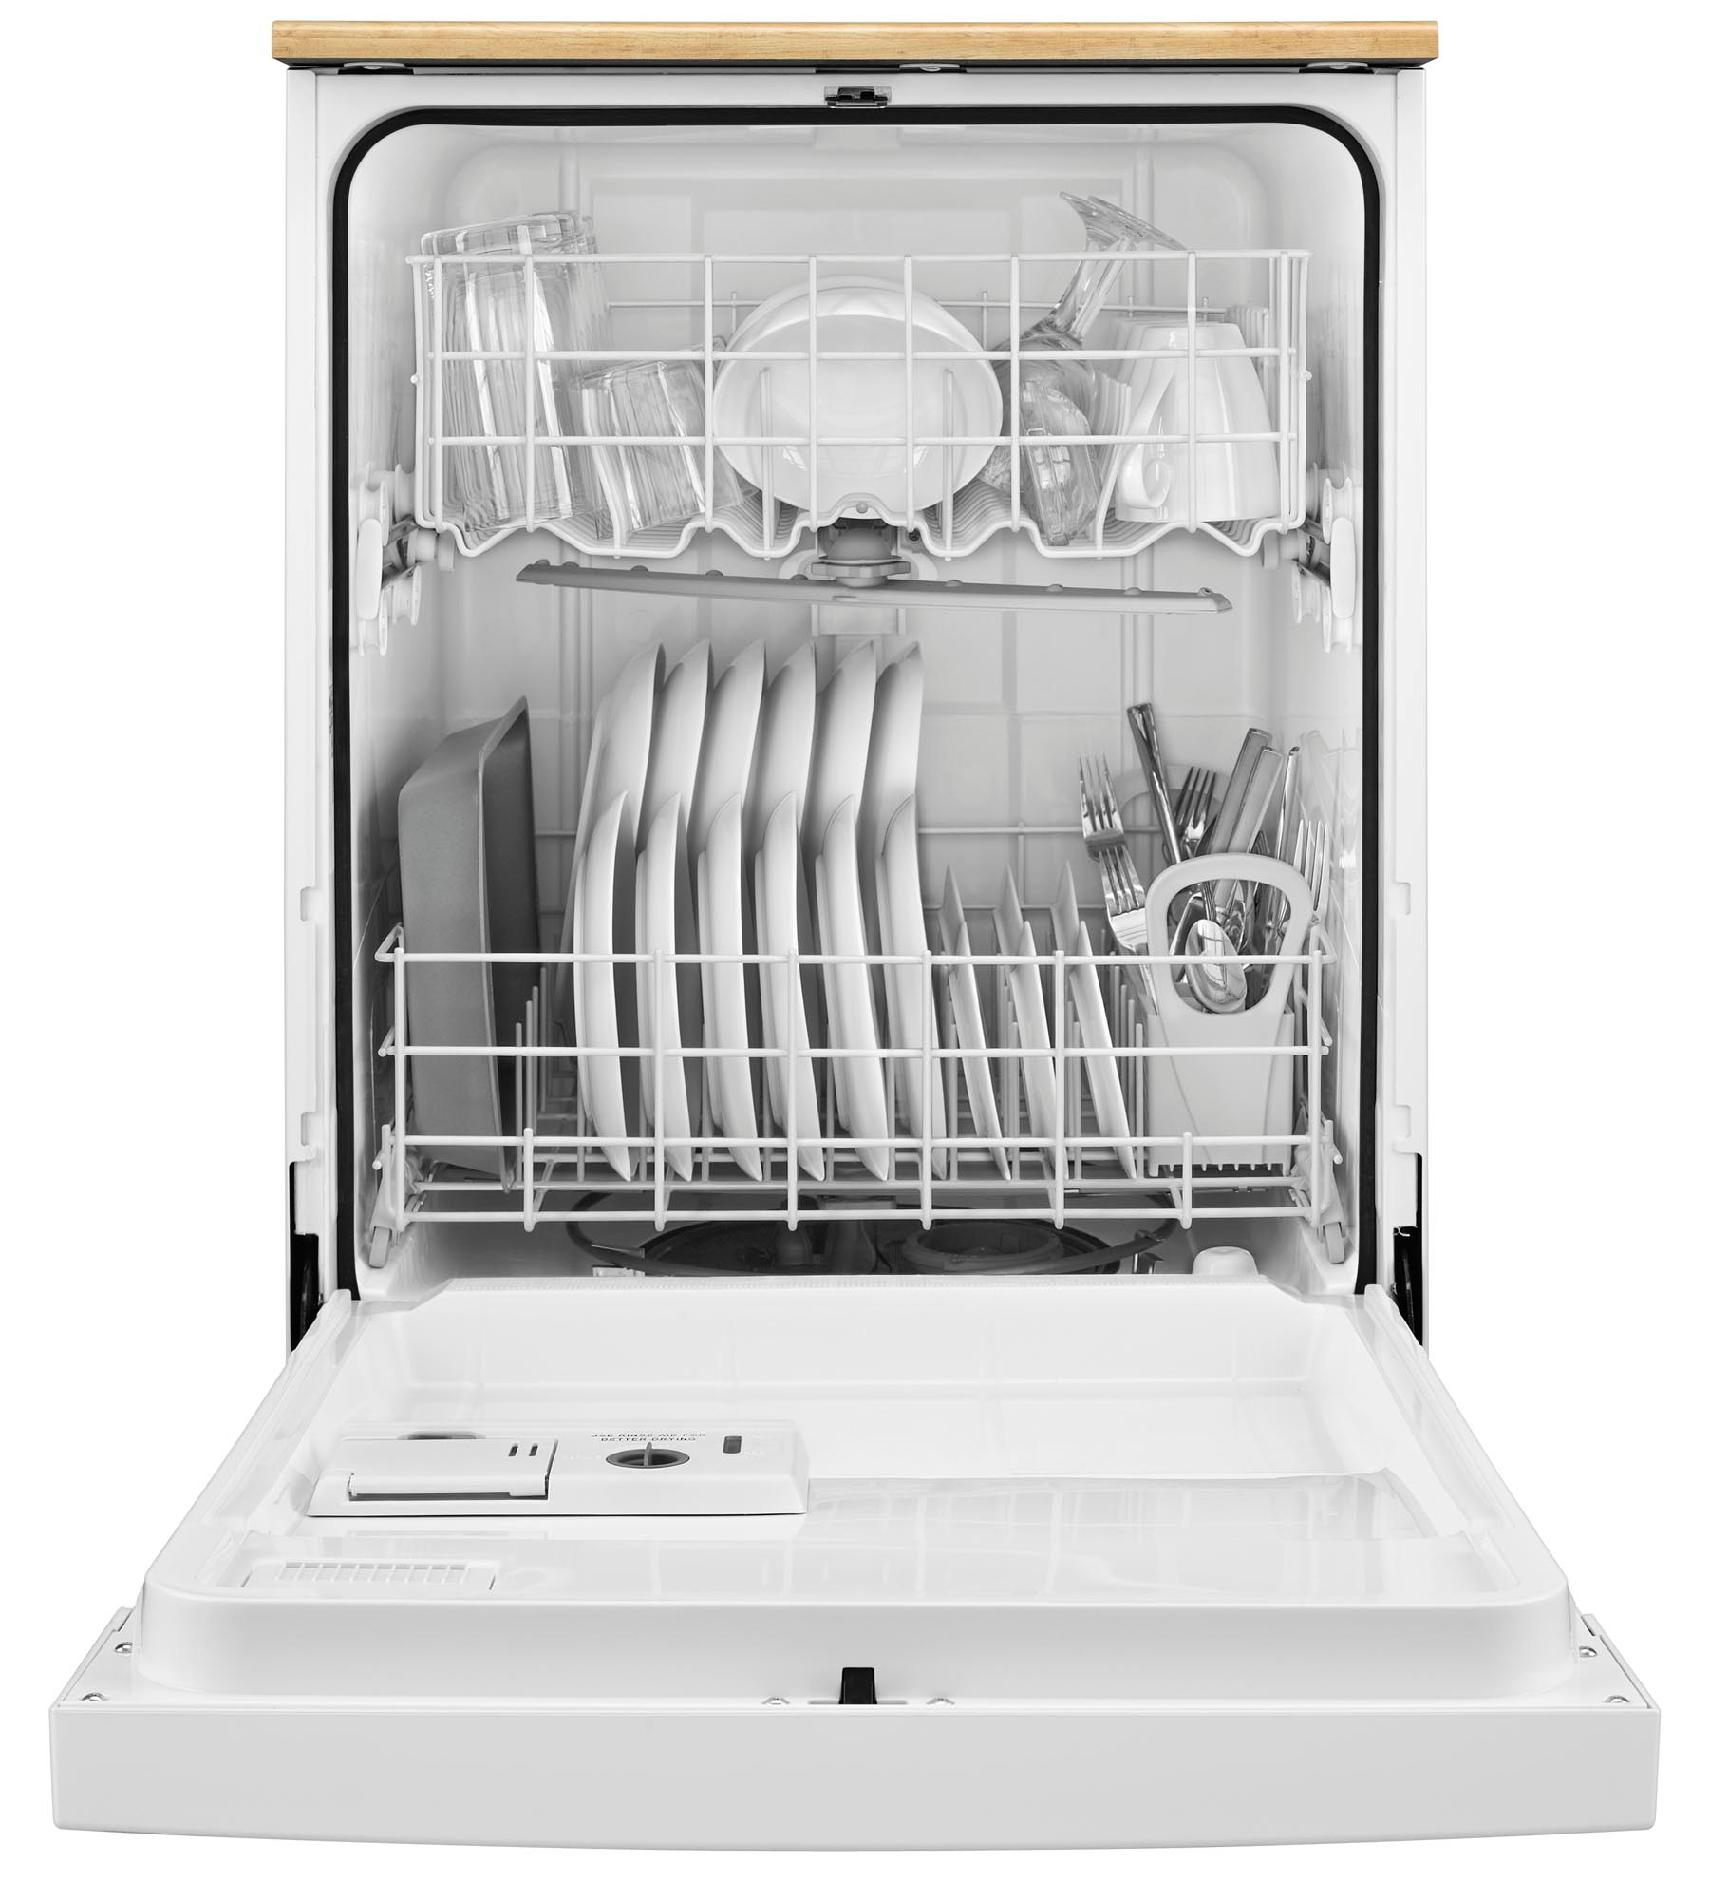 "Whirlpool 24"" Portable Dishwasher w/ 1-Hour Wash - White"